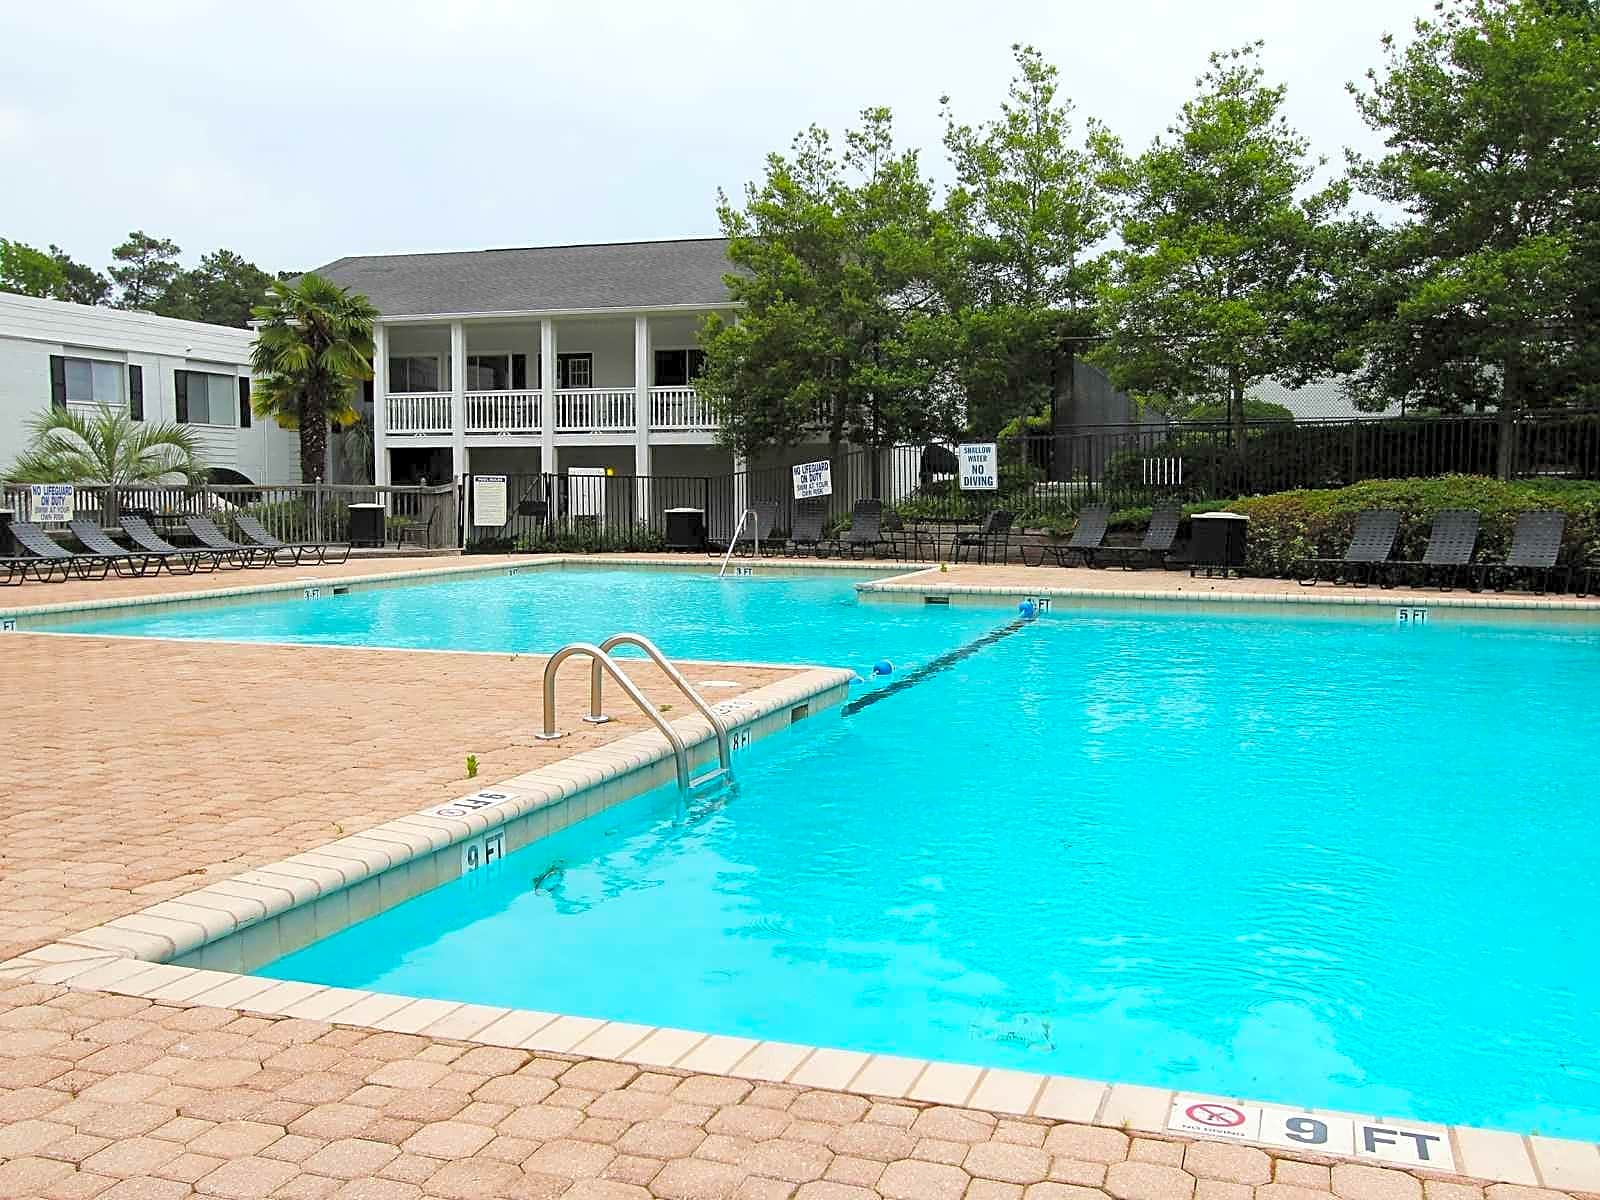 100 Riverbend Apartments - West Columbia, SC 29169